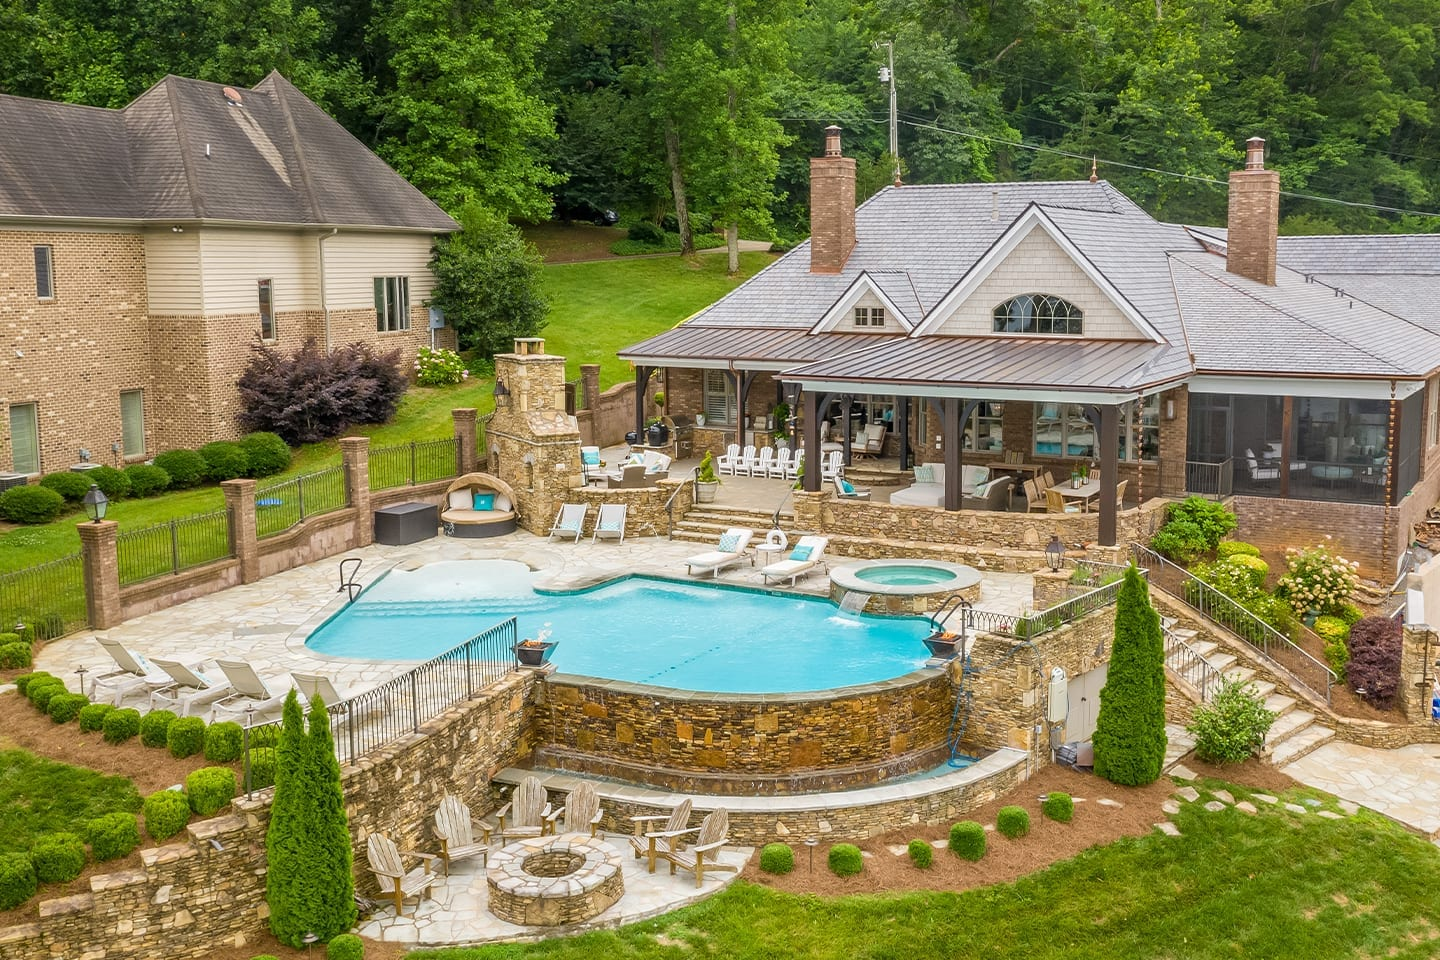 lakeside-home-in-hixson.FeatureImage